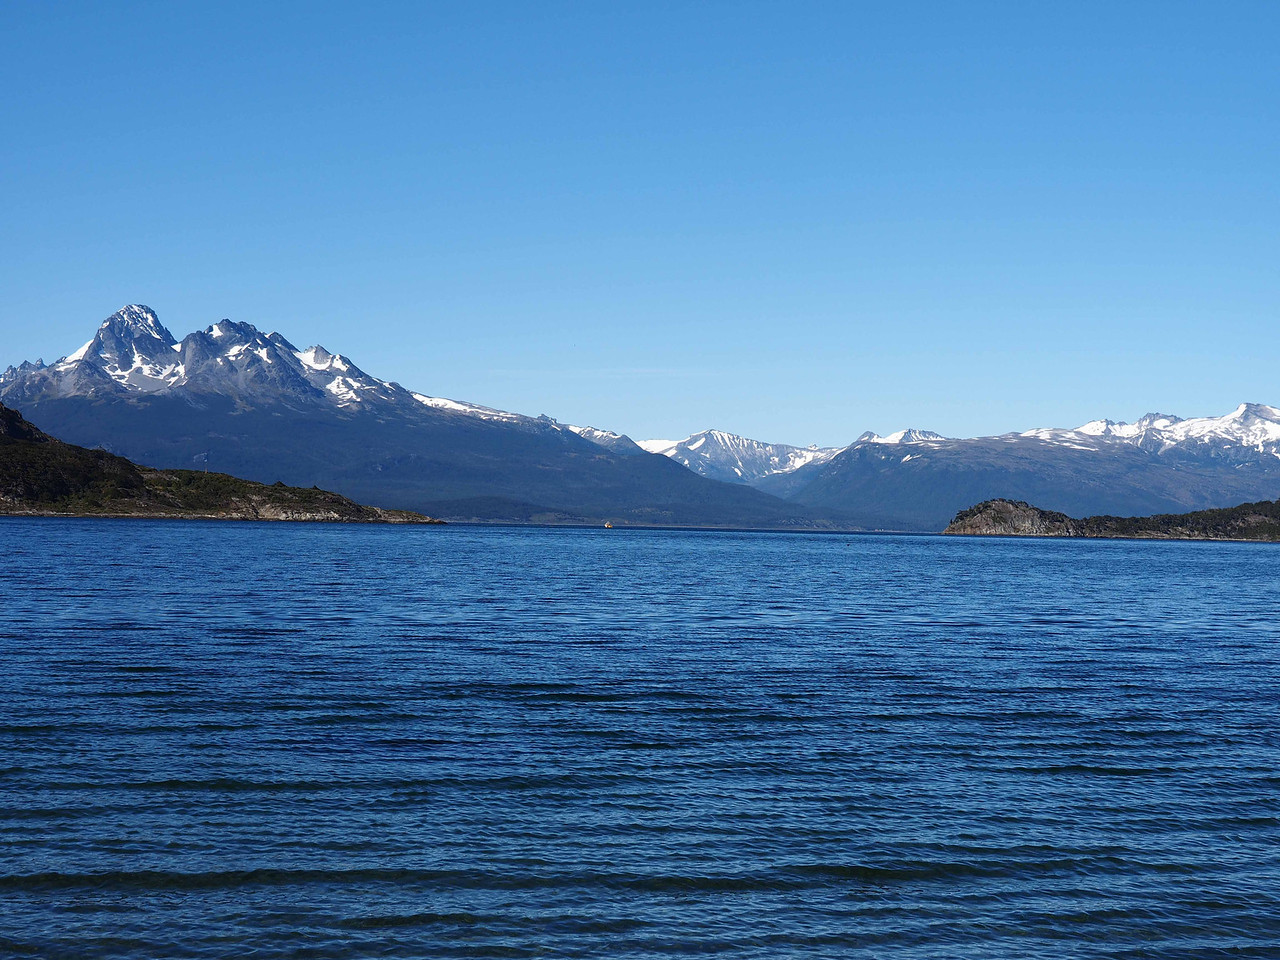 Beagle Channel, Tierra del Fuego National Park